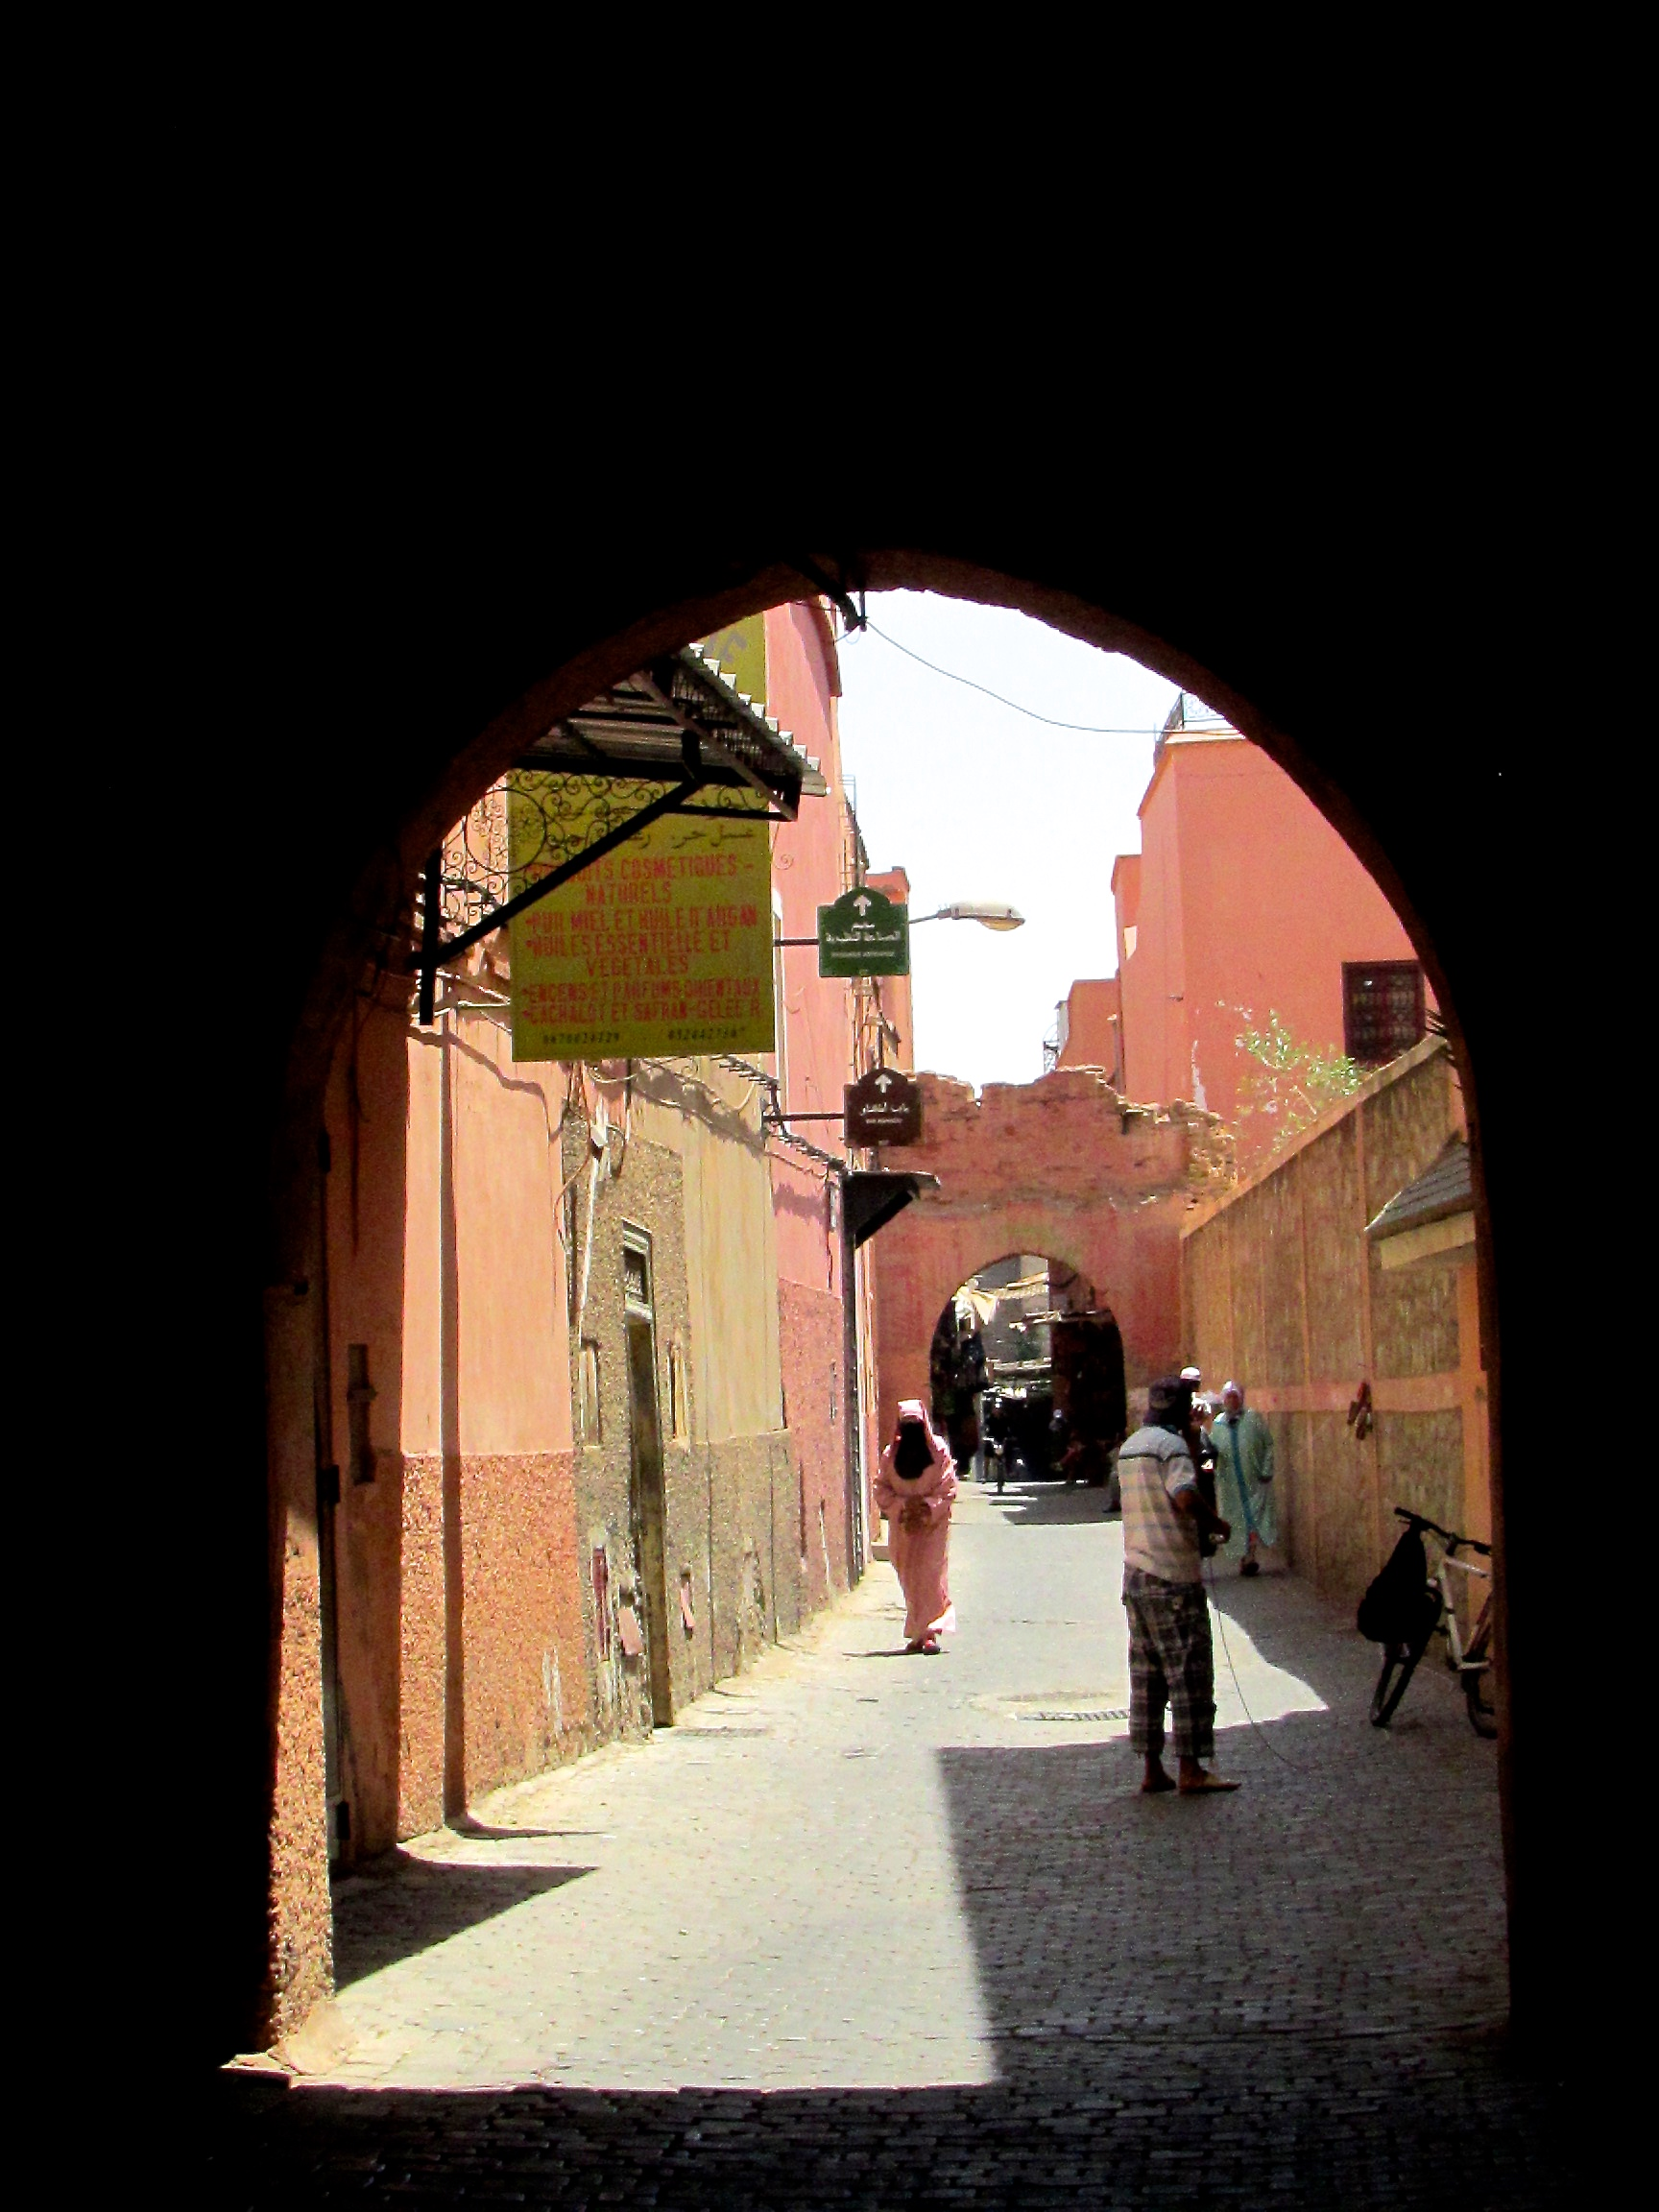 A side street in Marrakesh, Morocco, known to locals as The Red City